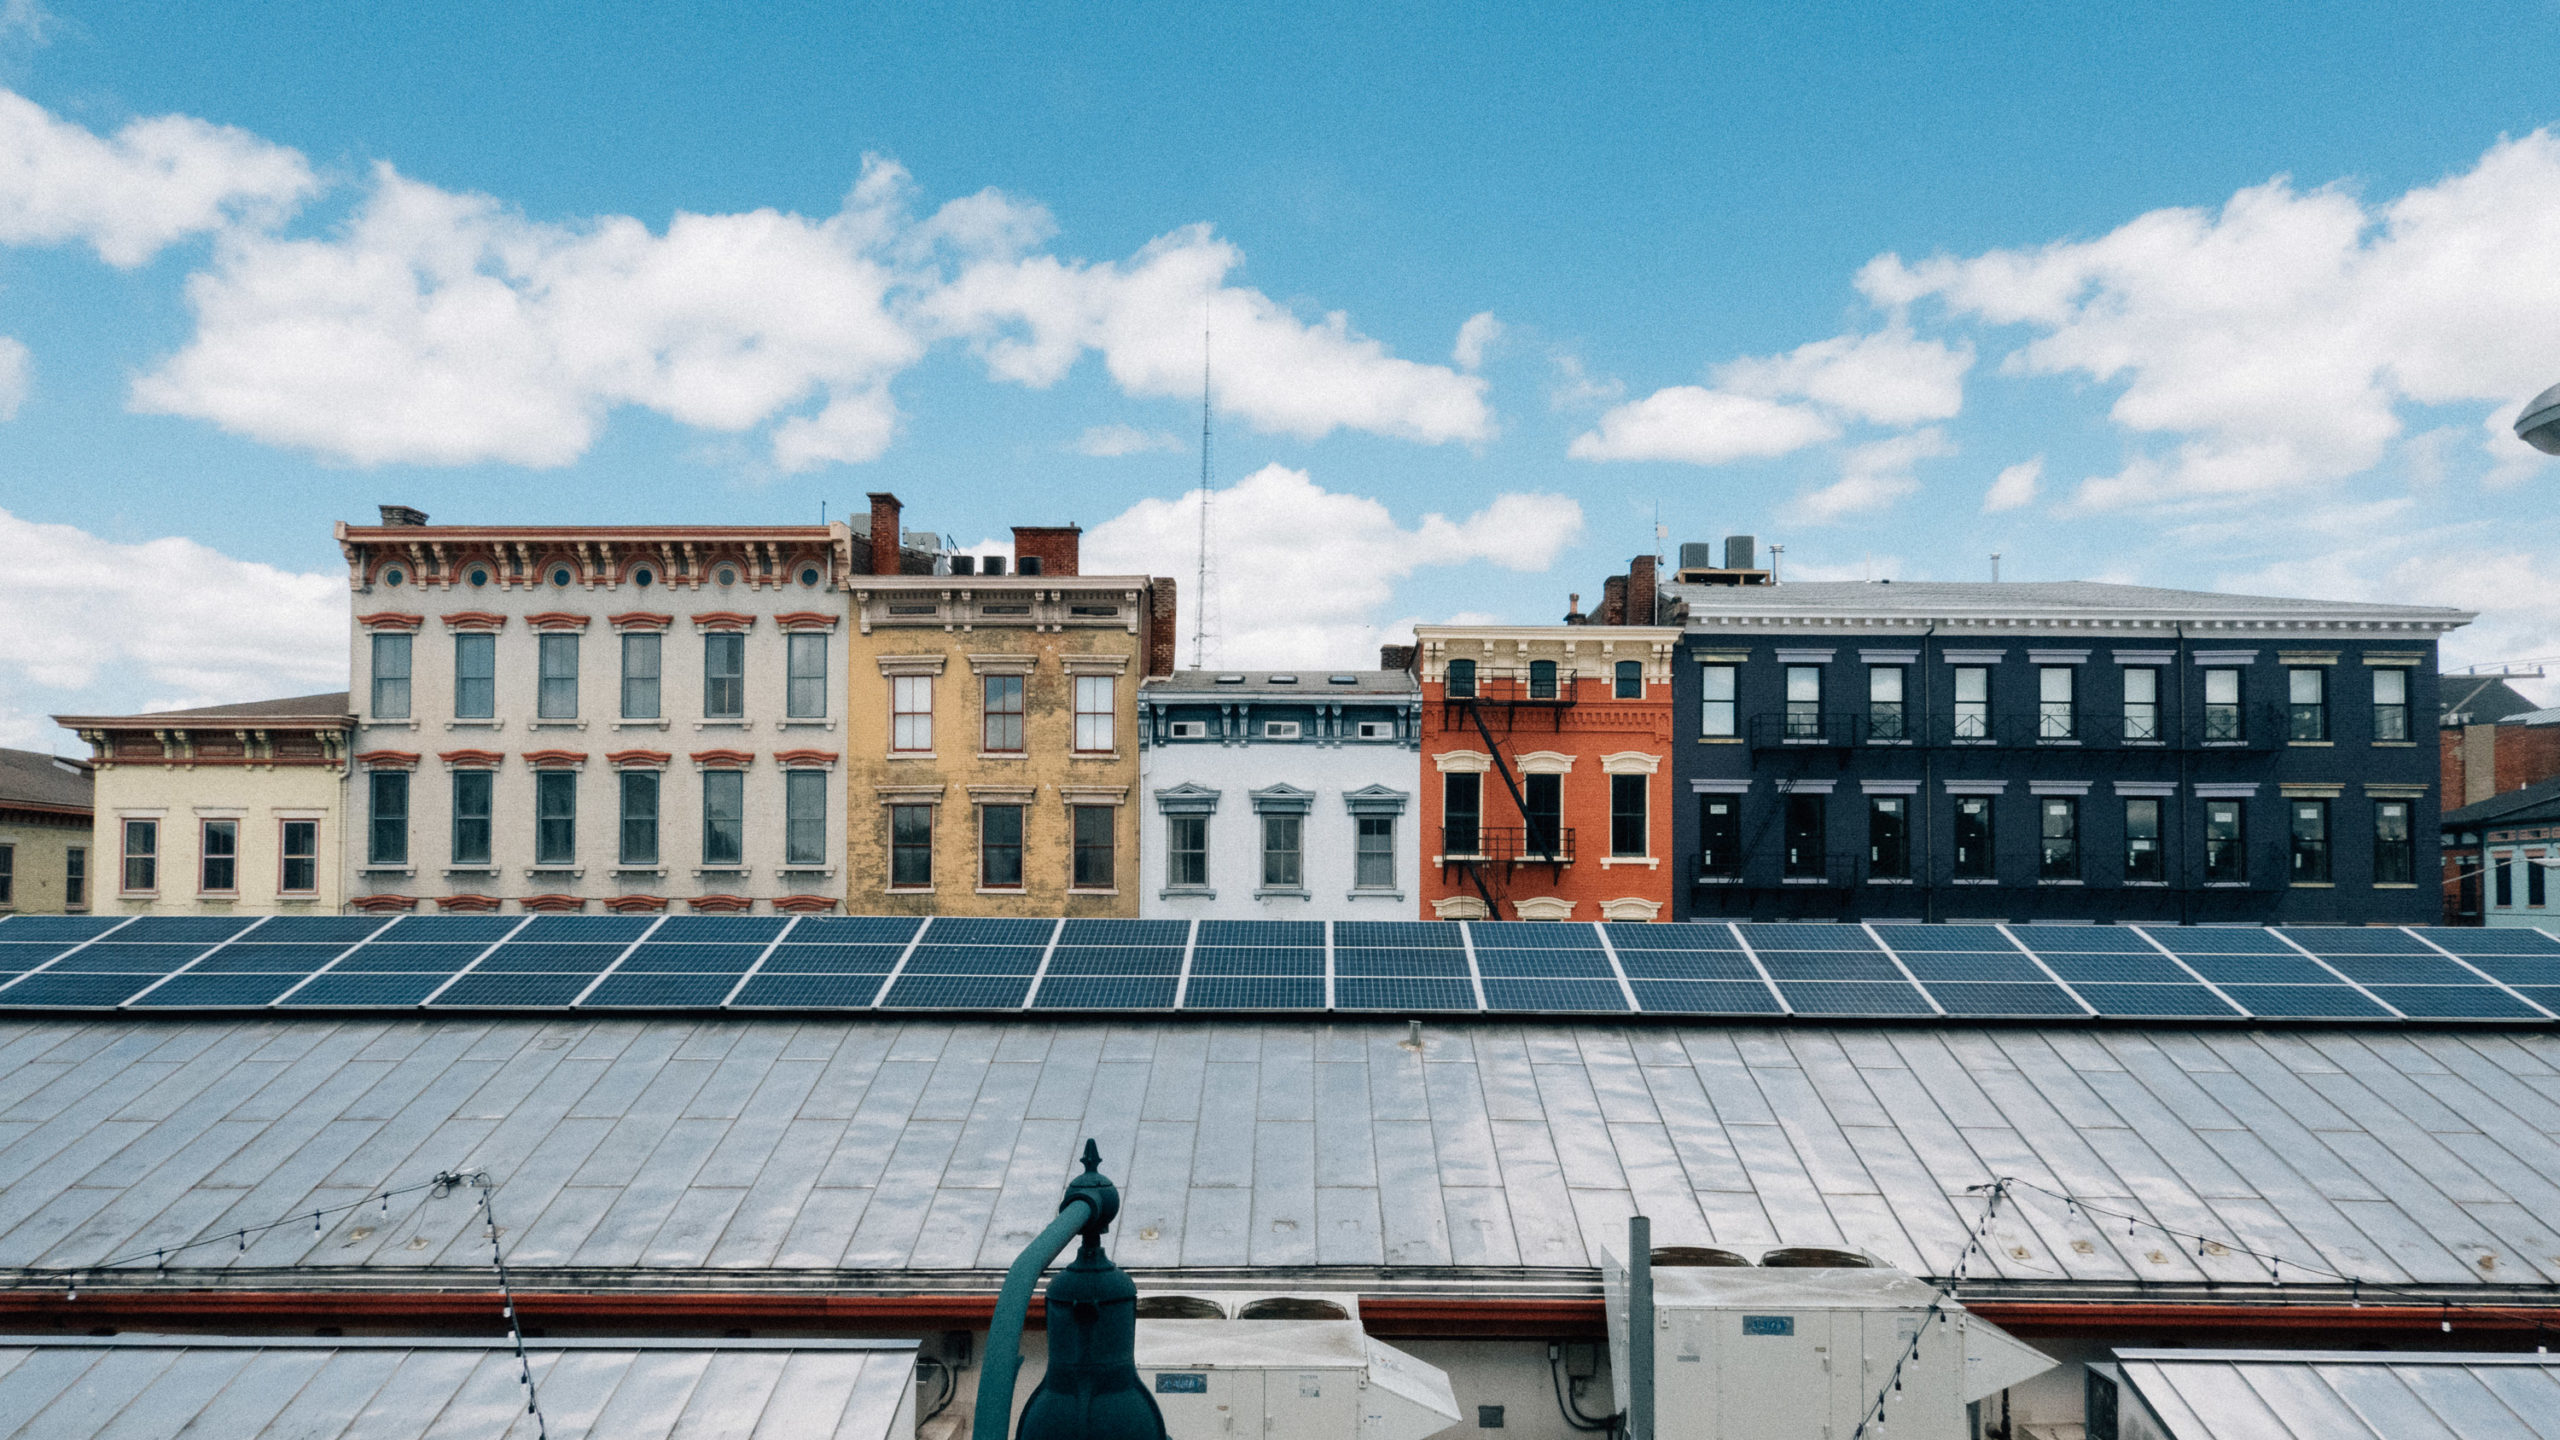 A view of city buildings and a solar roof